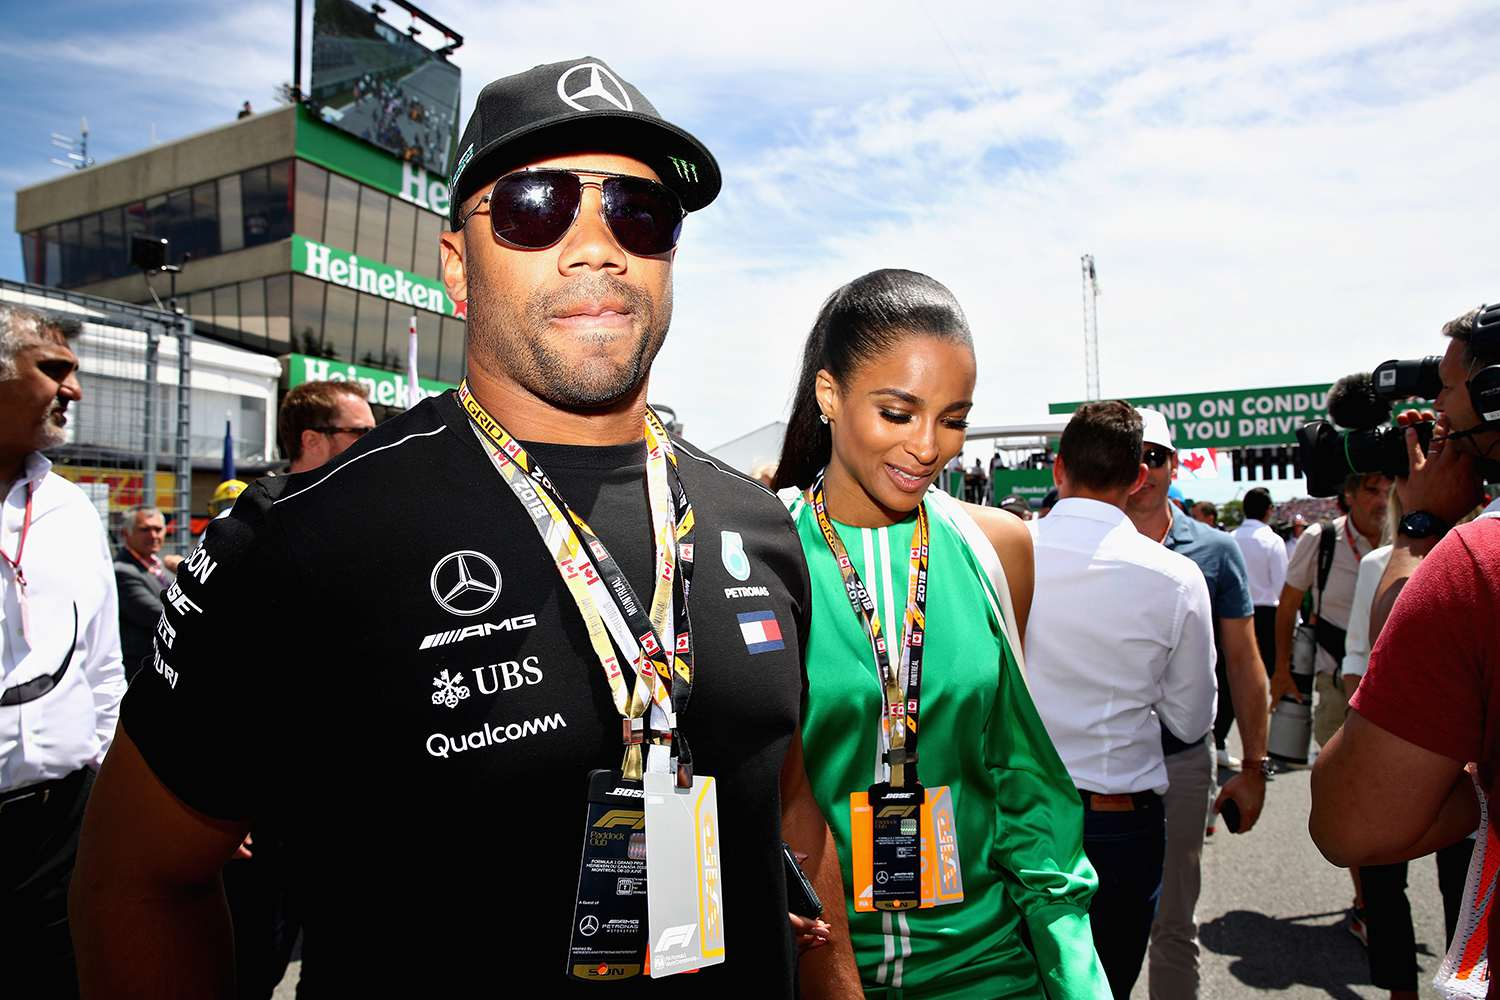 Seattle Seahawks Quarterback Russell Wilson walks on the grid before the Canadian Formula One Grand Prix at Circuit Gilles